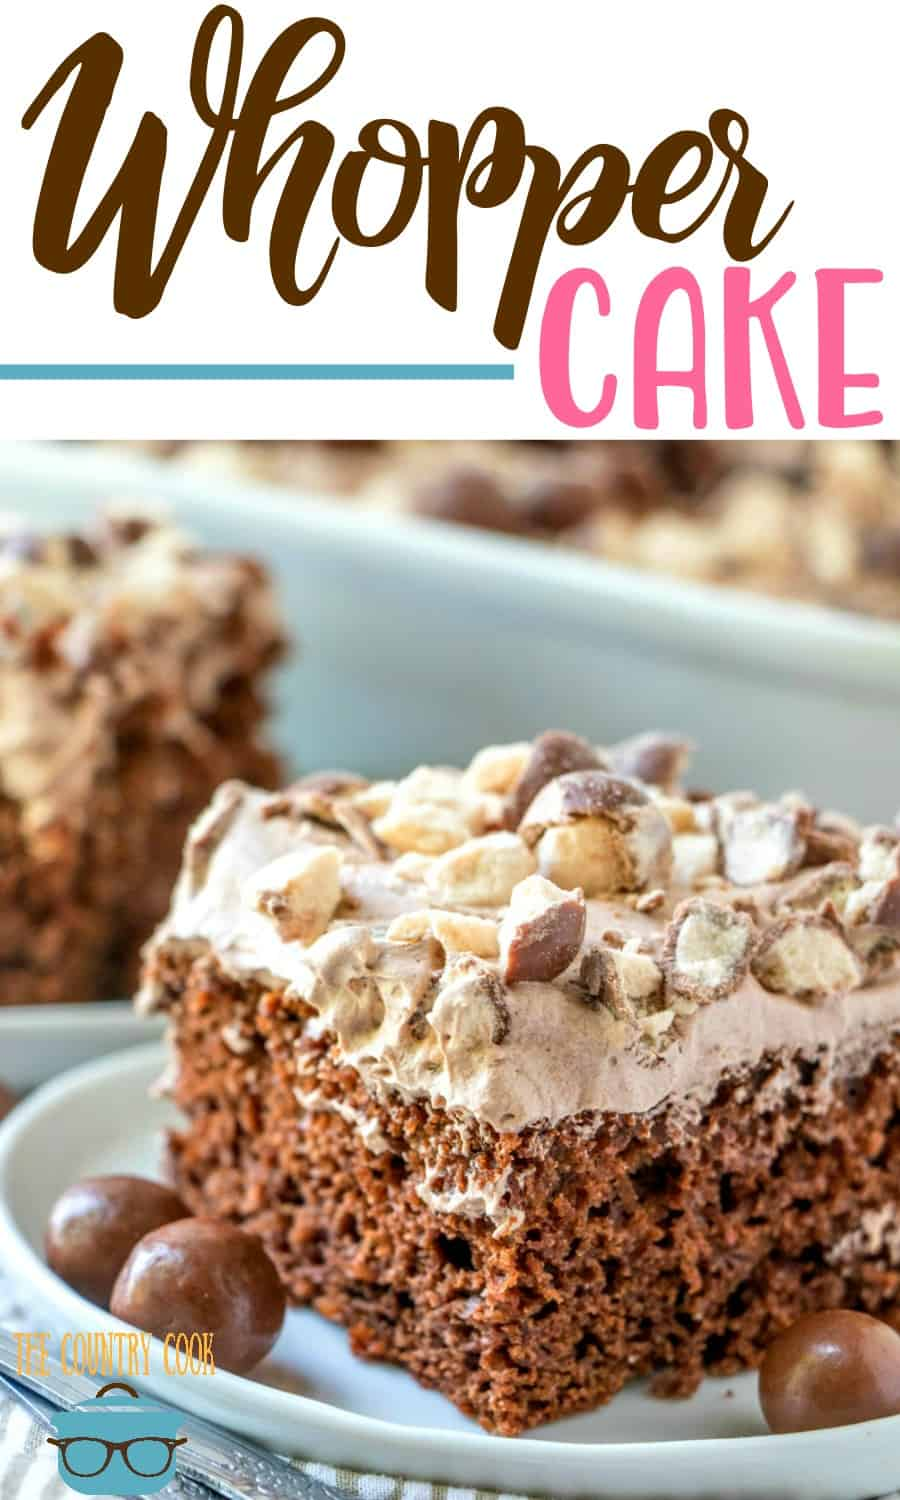 Whopper Cake (aka Malted Milk Ball Cake) is a moist, dressed up chocolate cake mix that is topped with a malted whipped topping.